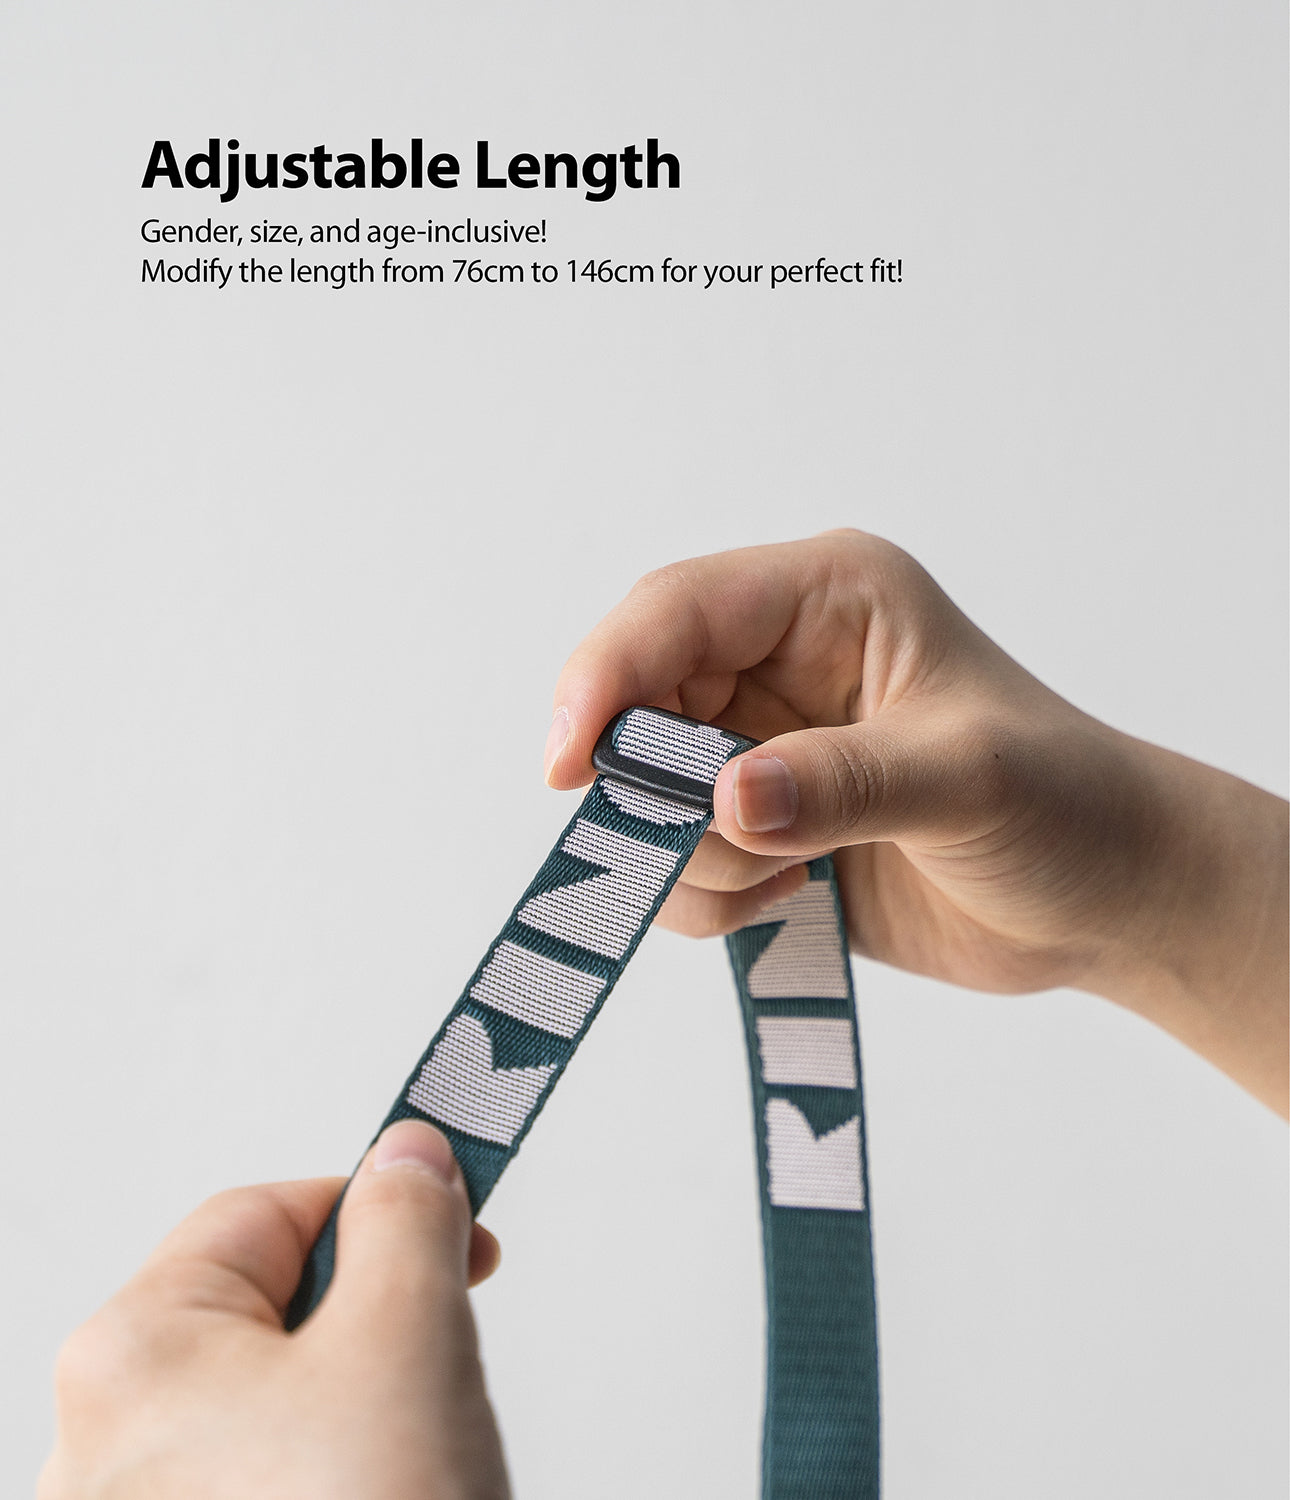 adjustable length : modify the length from 76cm to 146cm for your perfect fit